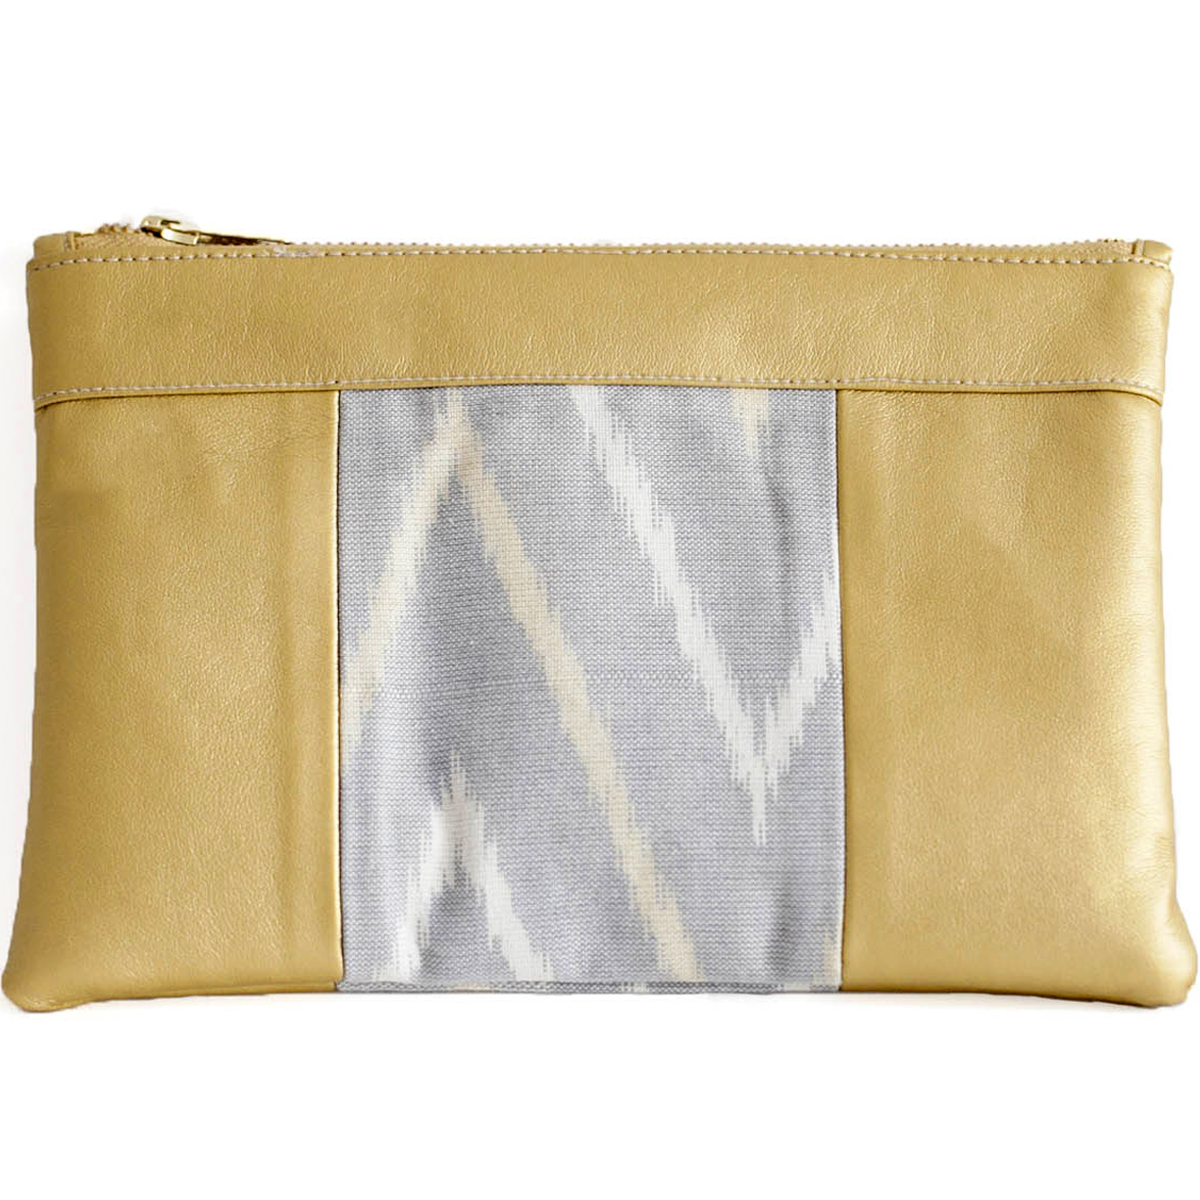 Cassie Clutch Gold & Mountain Gray